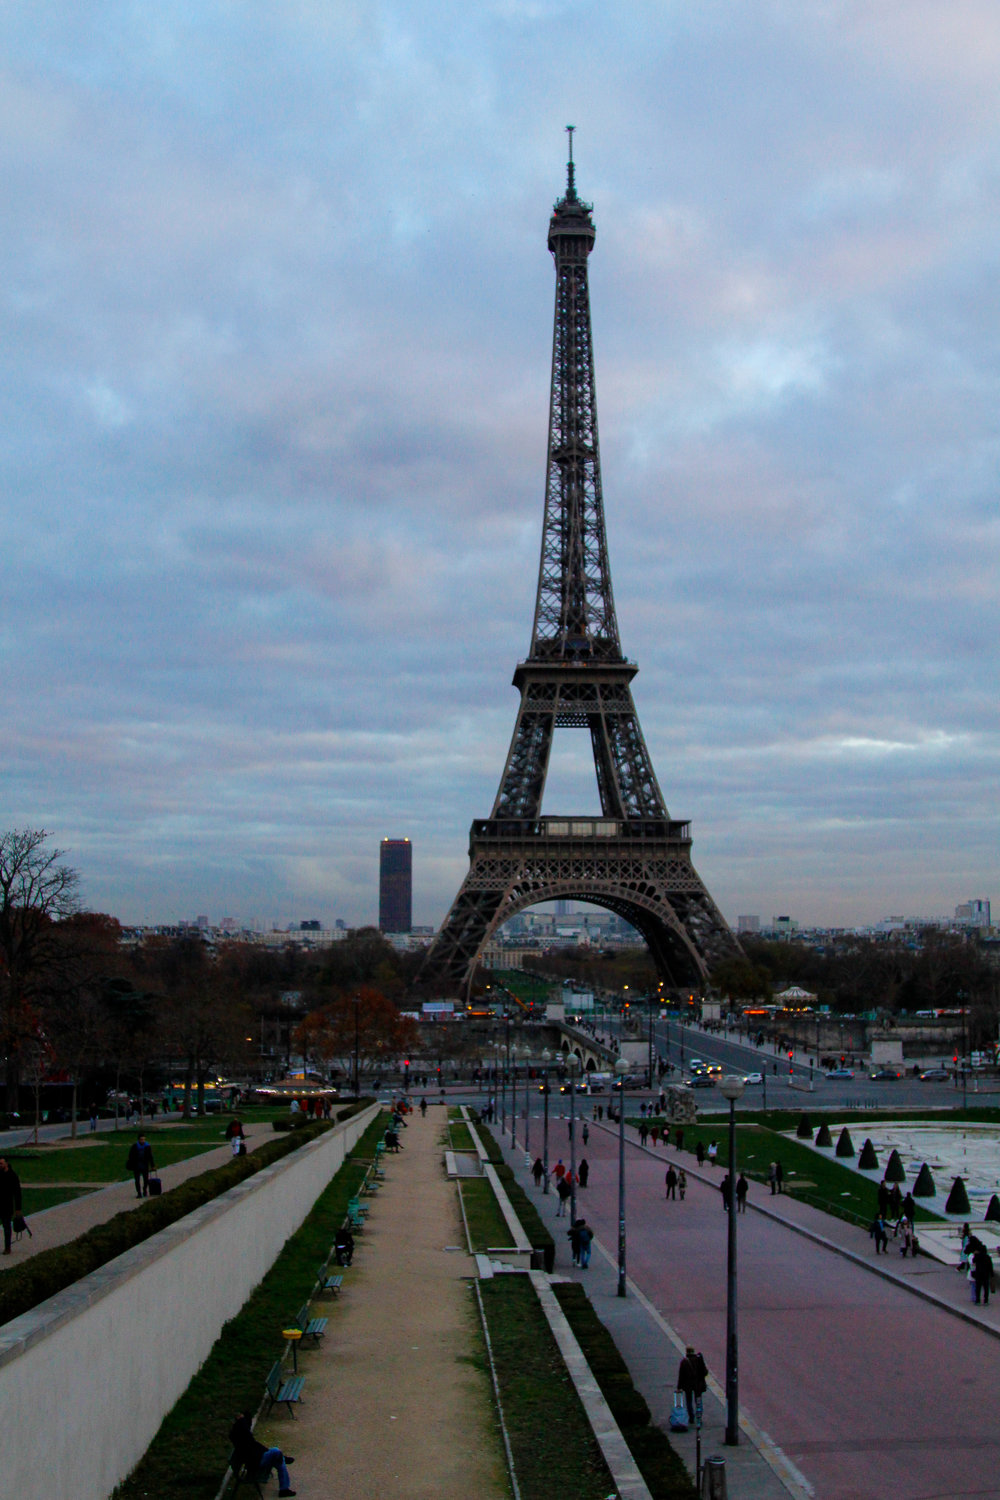 View of the Eiffel Tower from the Place du Trocadero